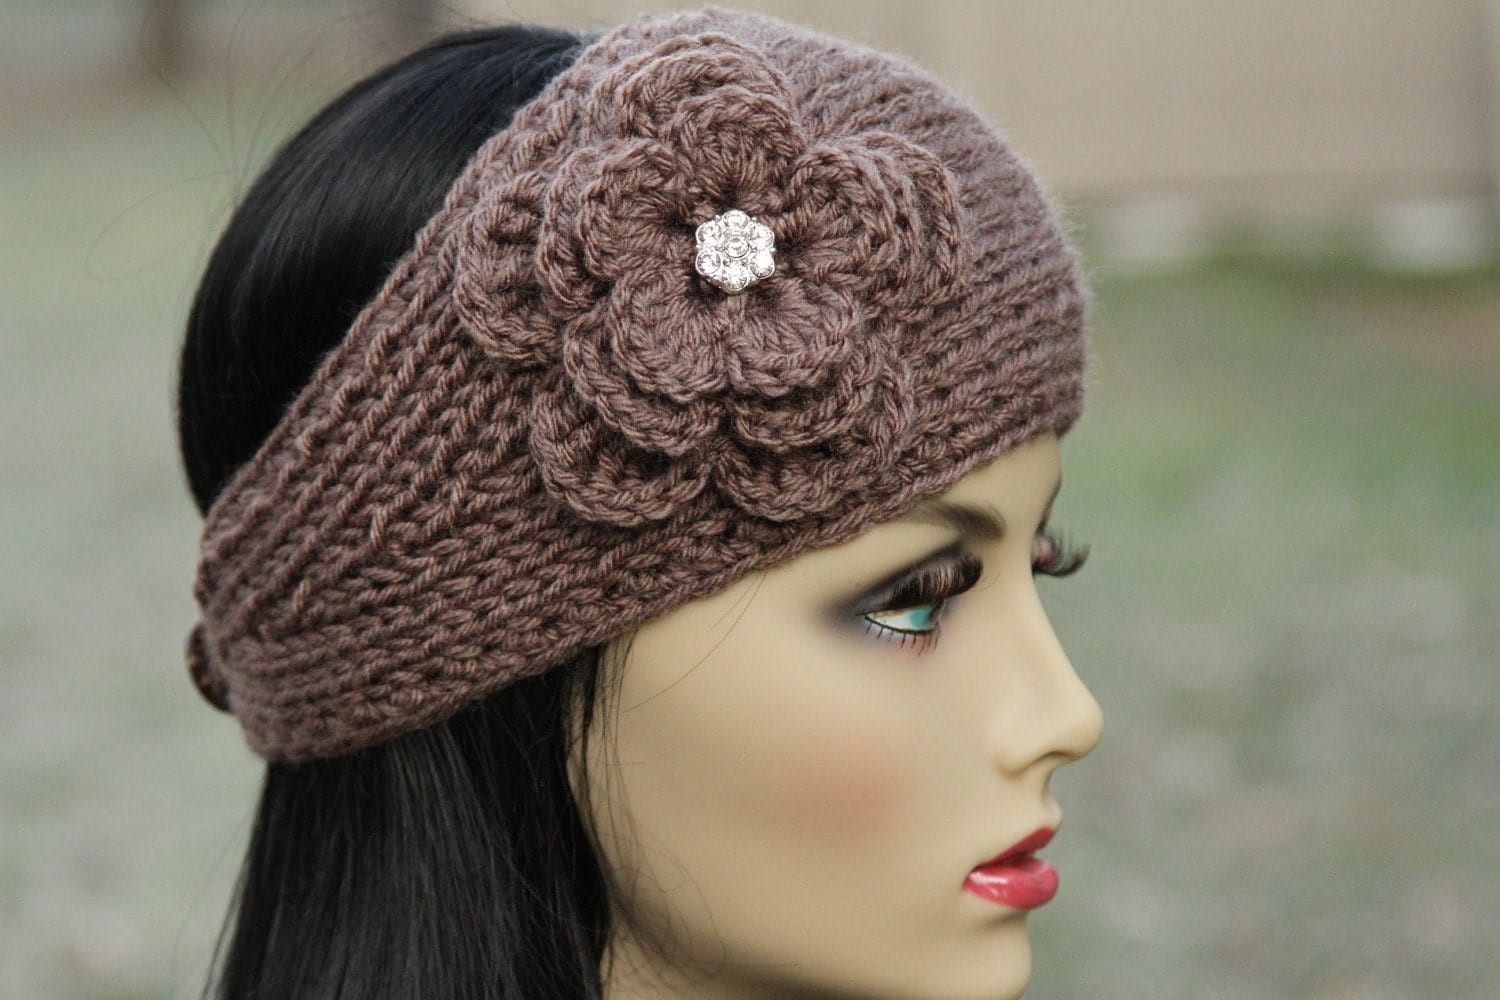 Knitted Headband Patterns With Flower : Ear Warmer Headband Head Wrap Hand Knit Taupe